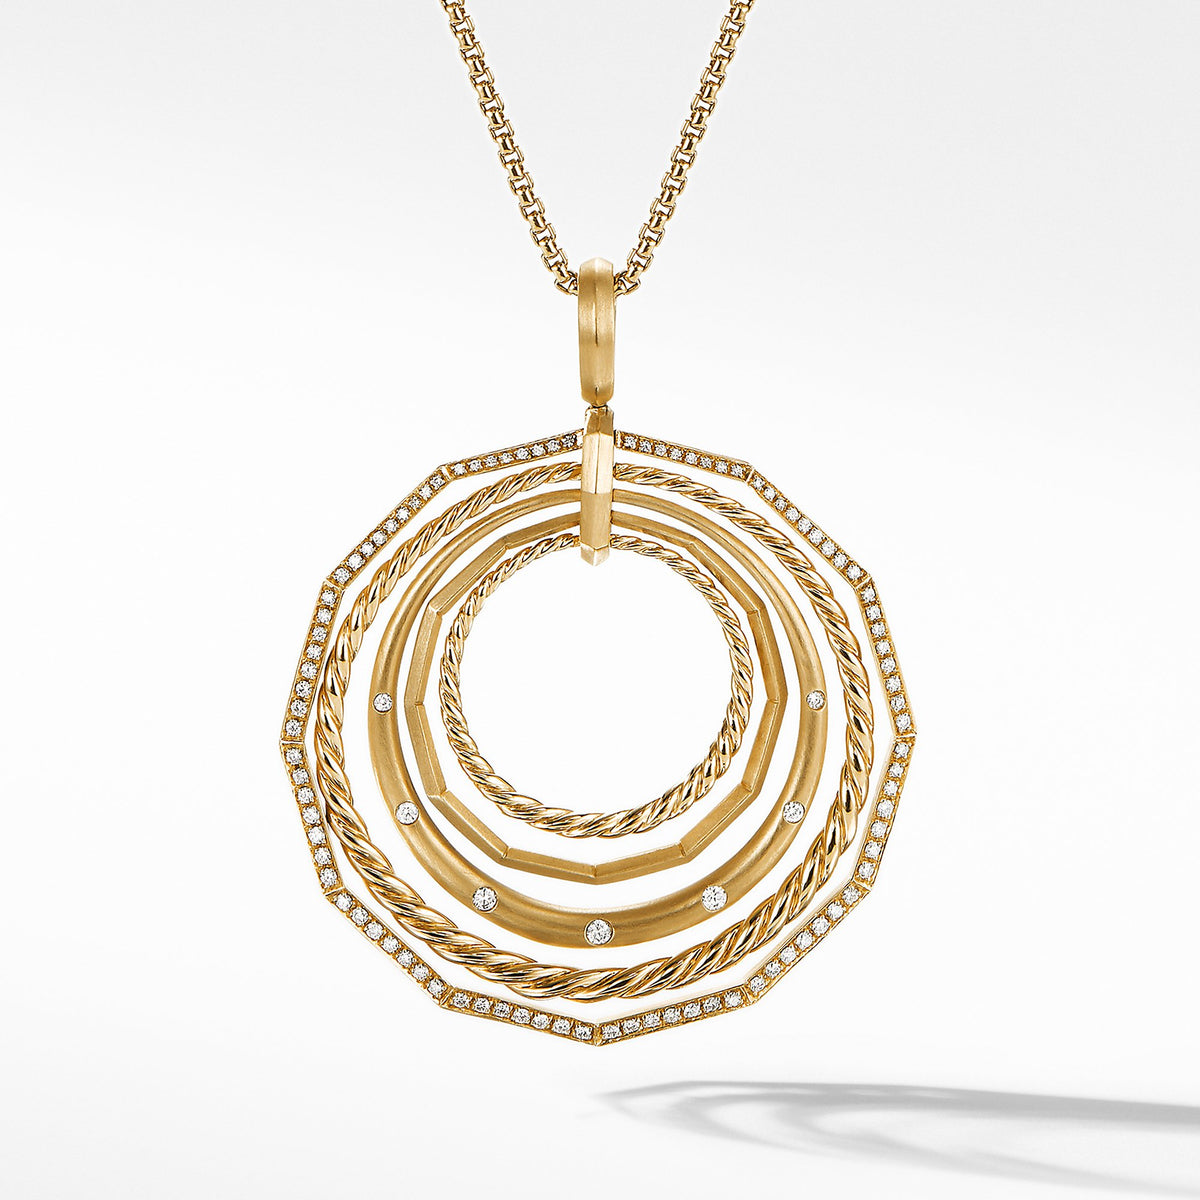 Stax Long Pendant Necklace with Diamonds in 18K Gold 41mm